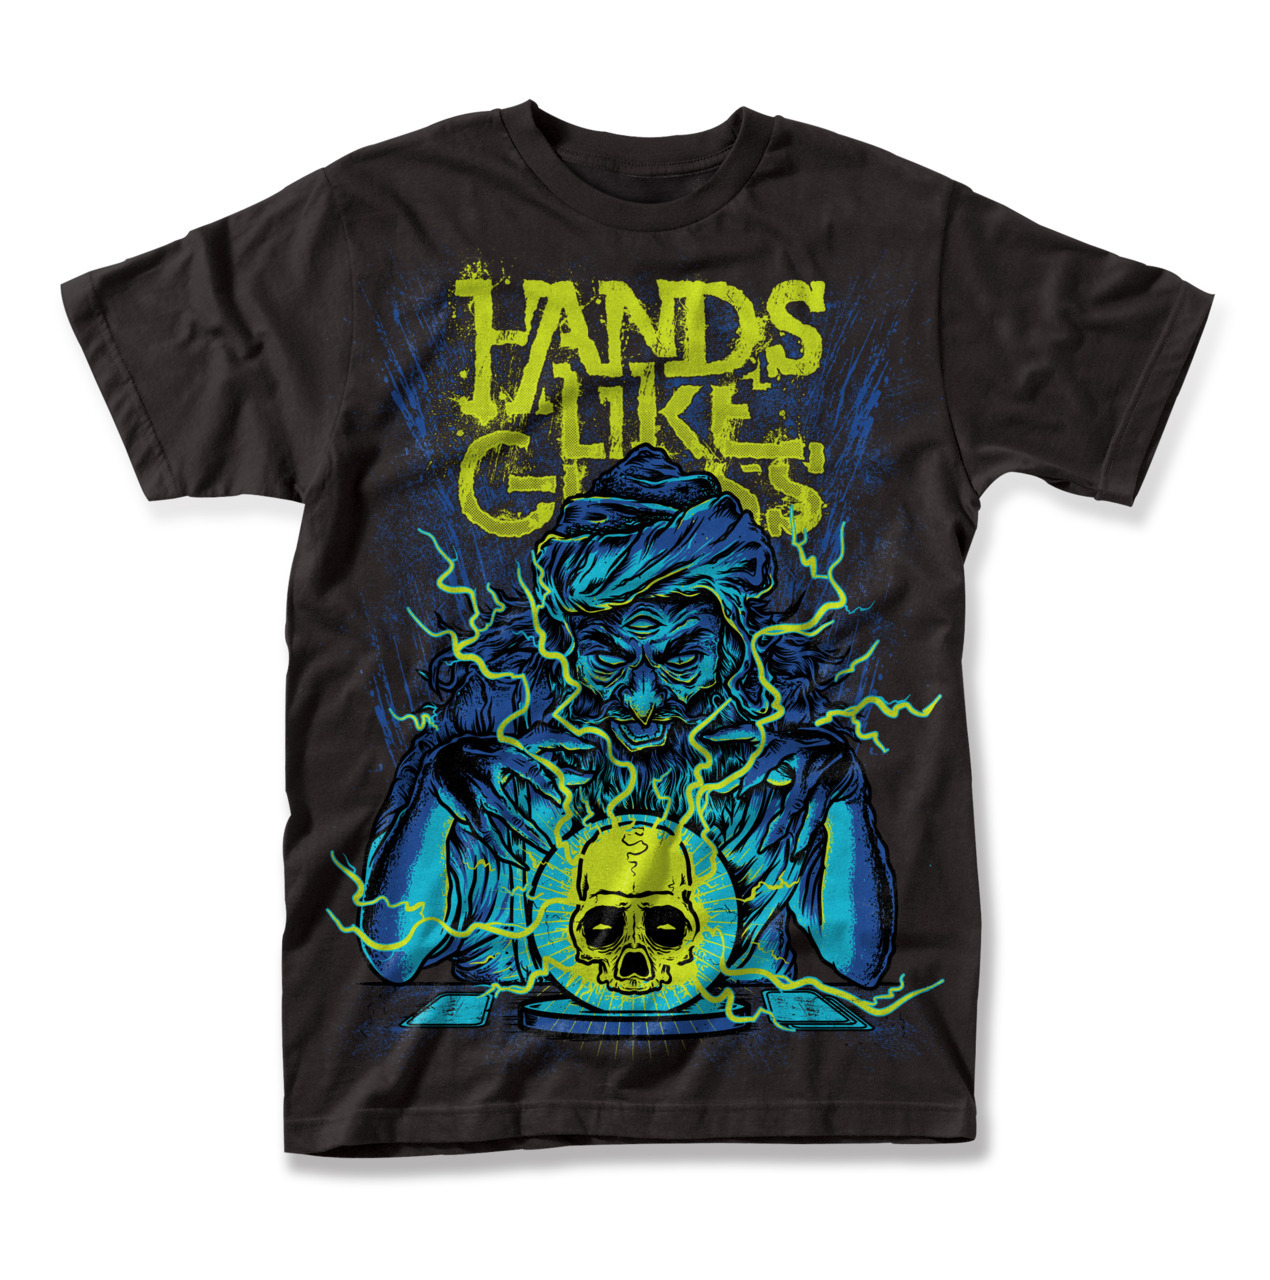 heres another tee idid for hands like glass.